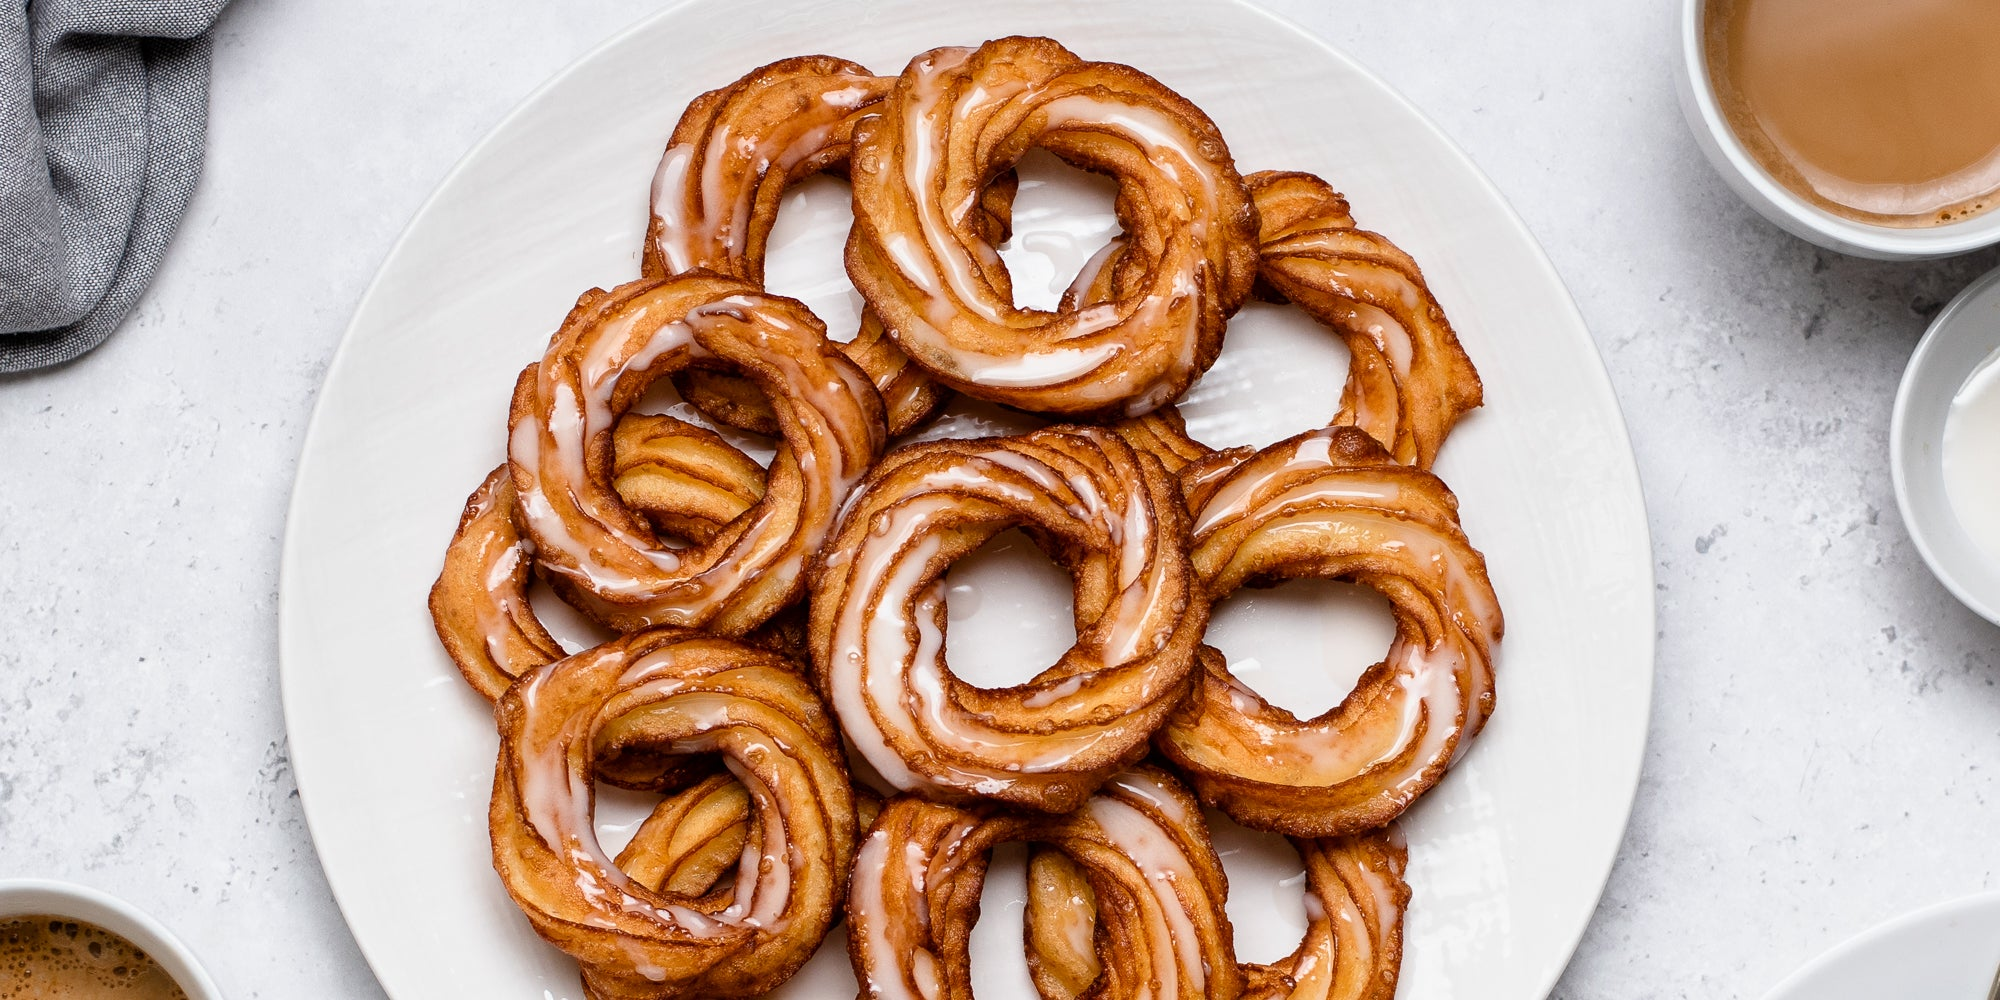 Close up top view of Apple Cider Crullers on a plate, drizzled with icing